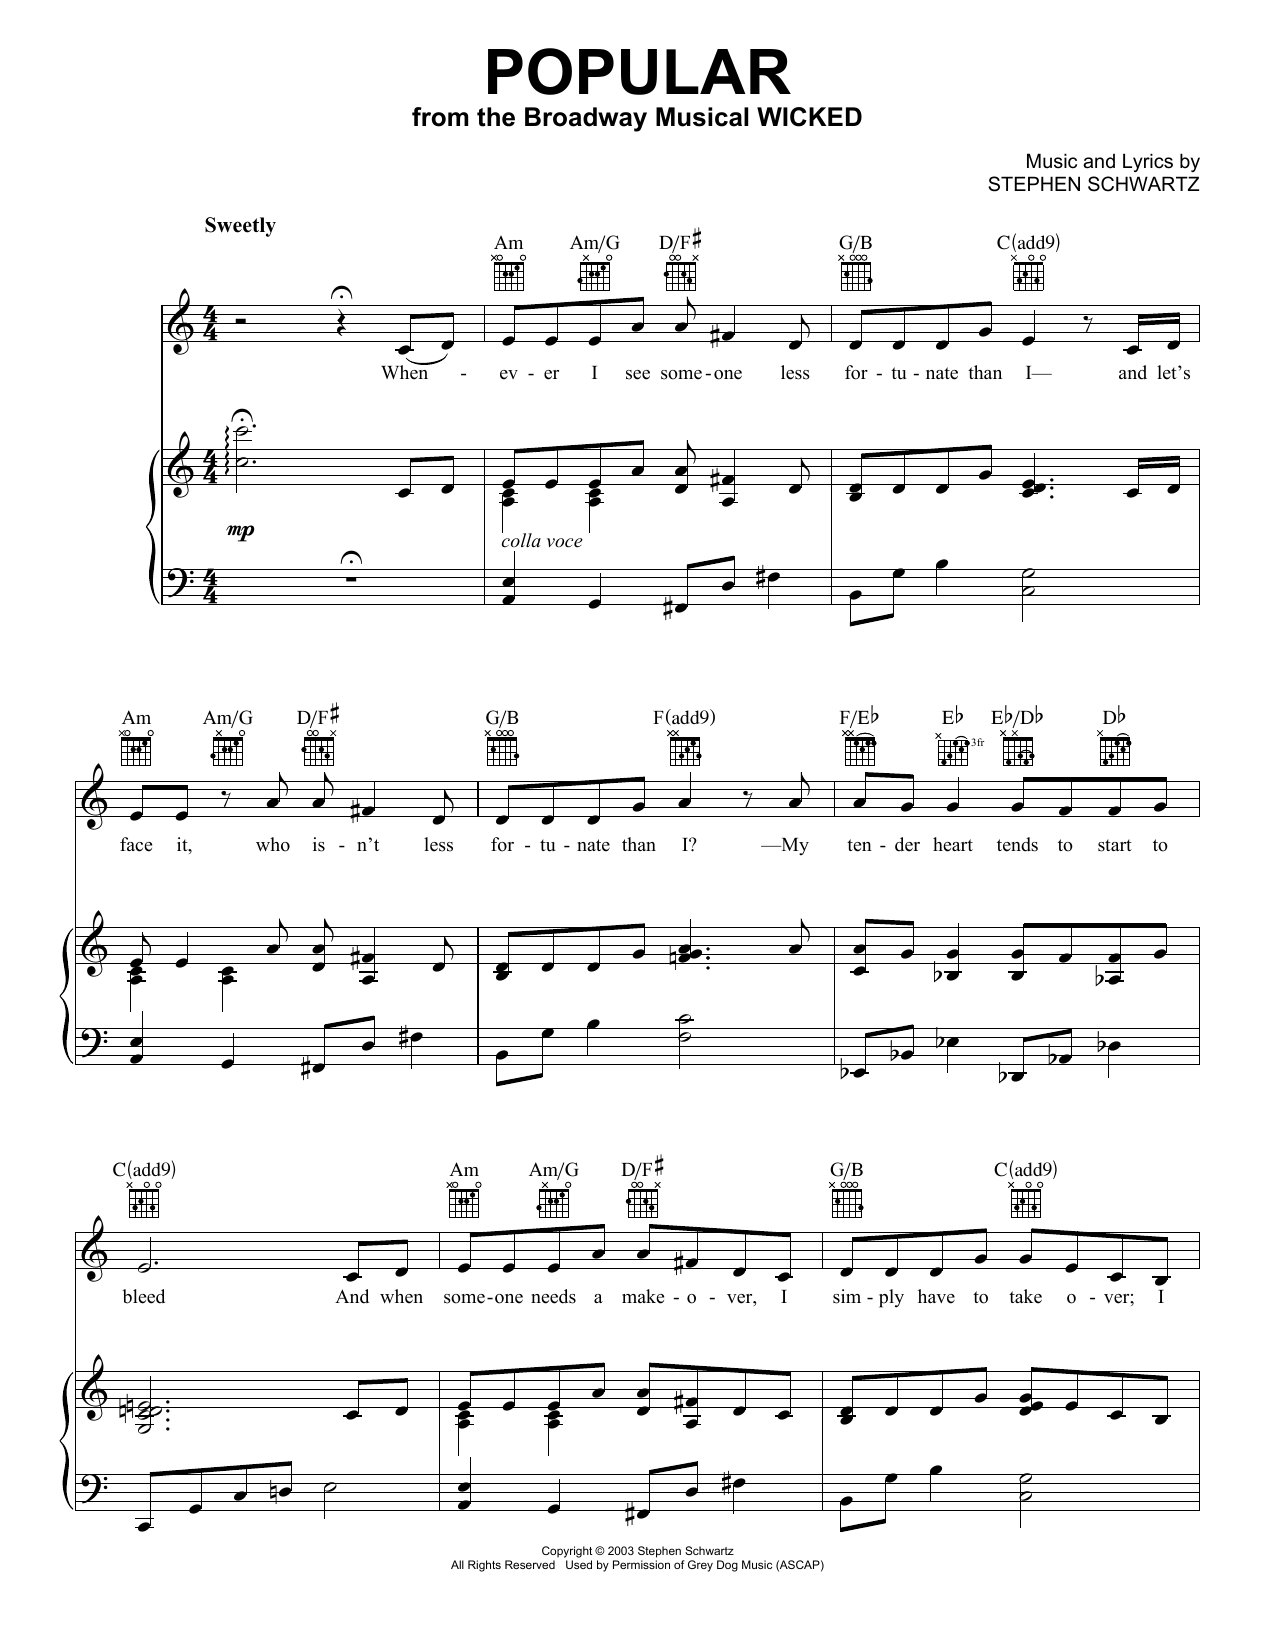 Stephen Schwartz Popular (from Wicked) sheet music notes and chords. Download Printable PDF.